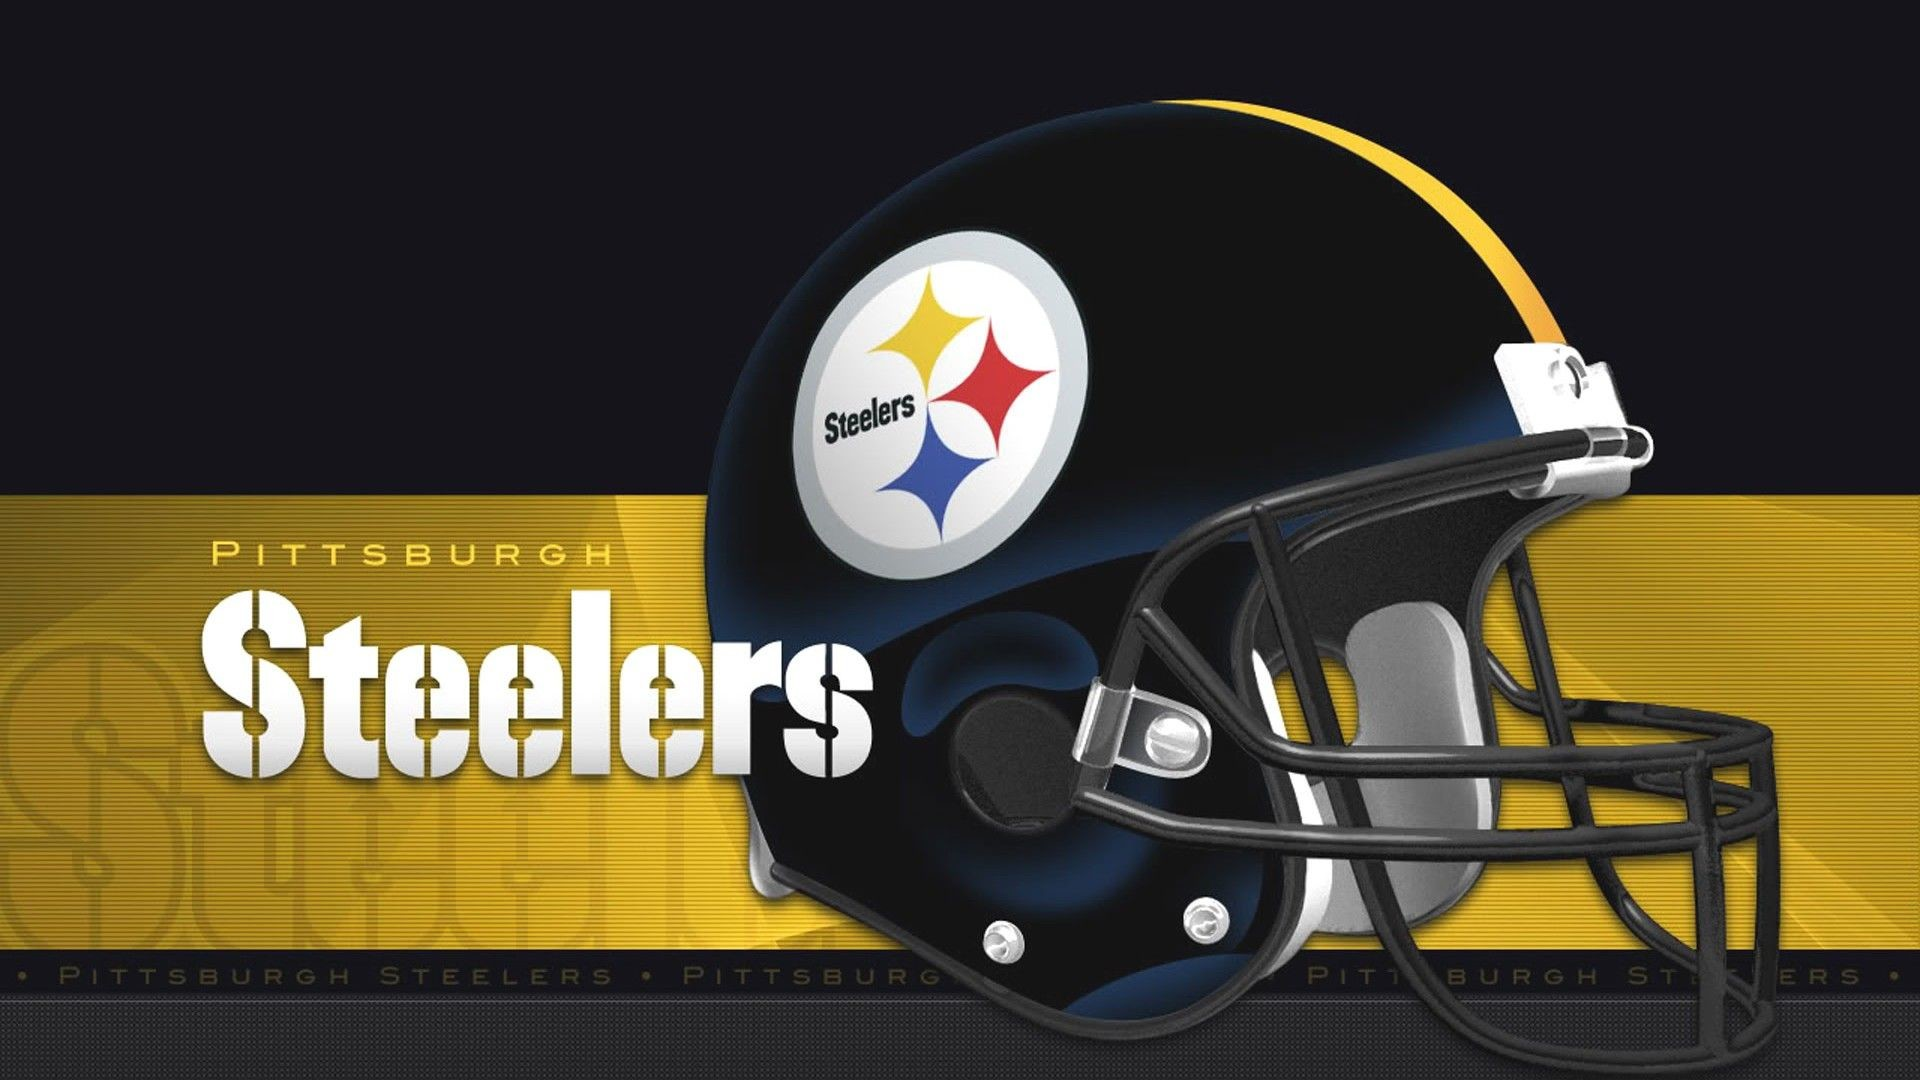 Res: 1920x1080, Pittsburgh Steelers Wallpaper For Mac Backgrounds | Best NFL Wallpapers